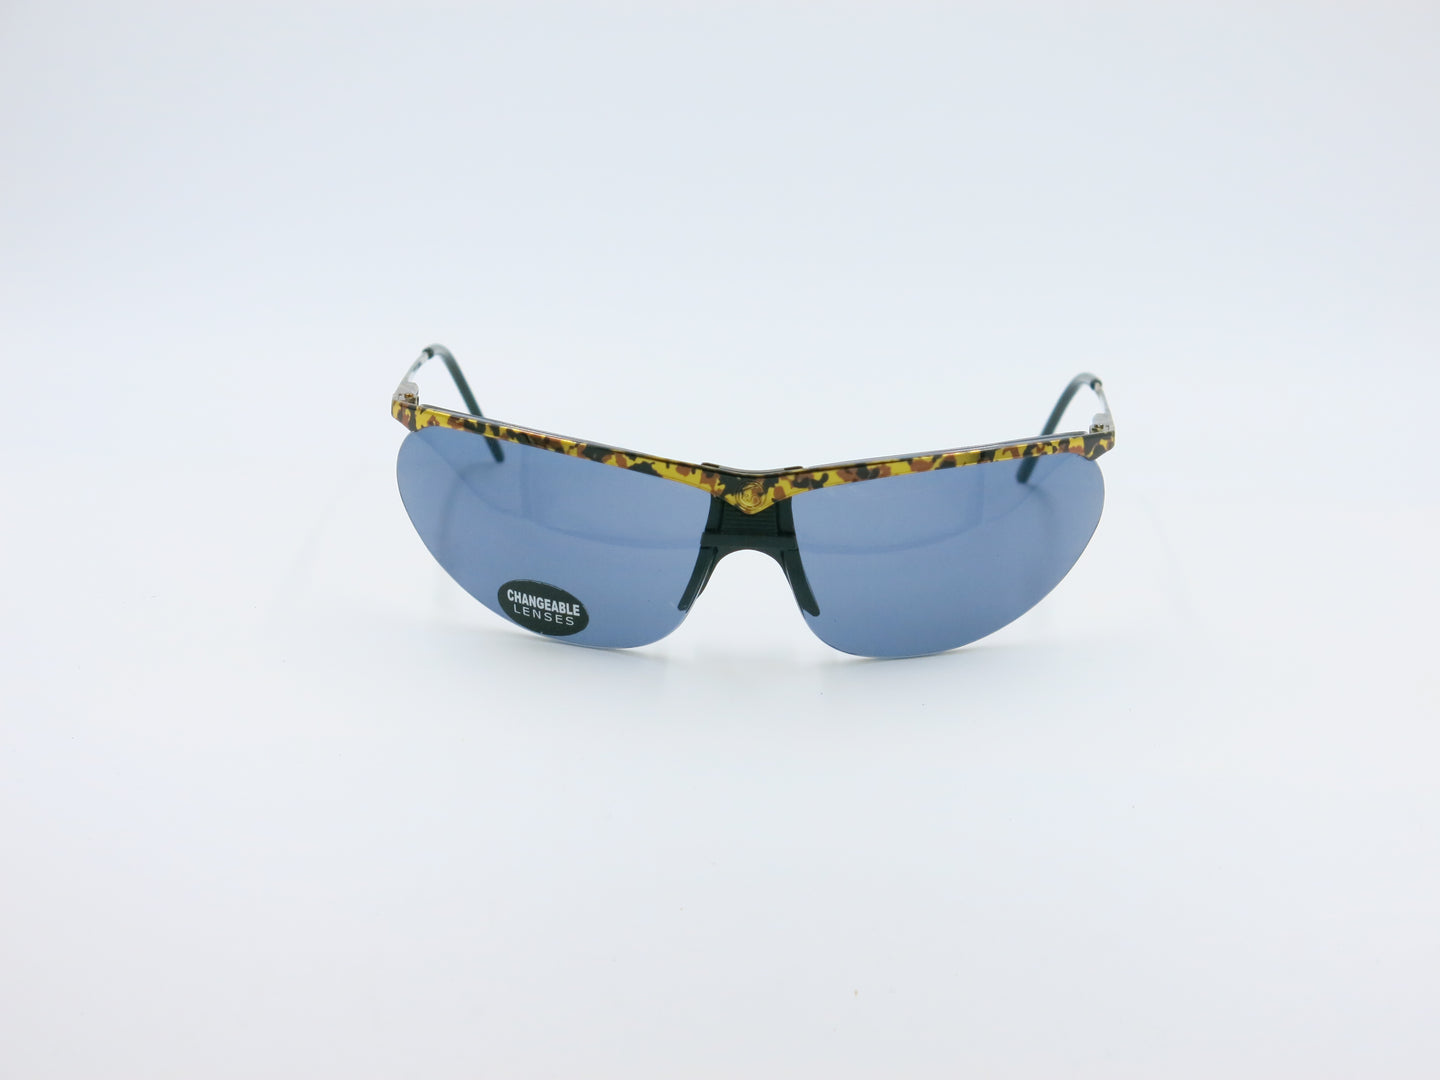 Gargoyles Sunglasses Legends II Tortoise | Sunglasses by Gargoyles | Friedman & Sons